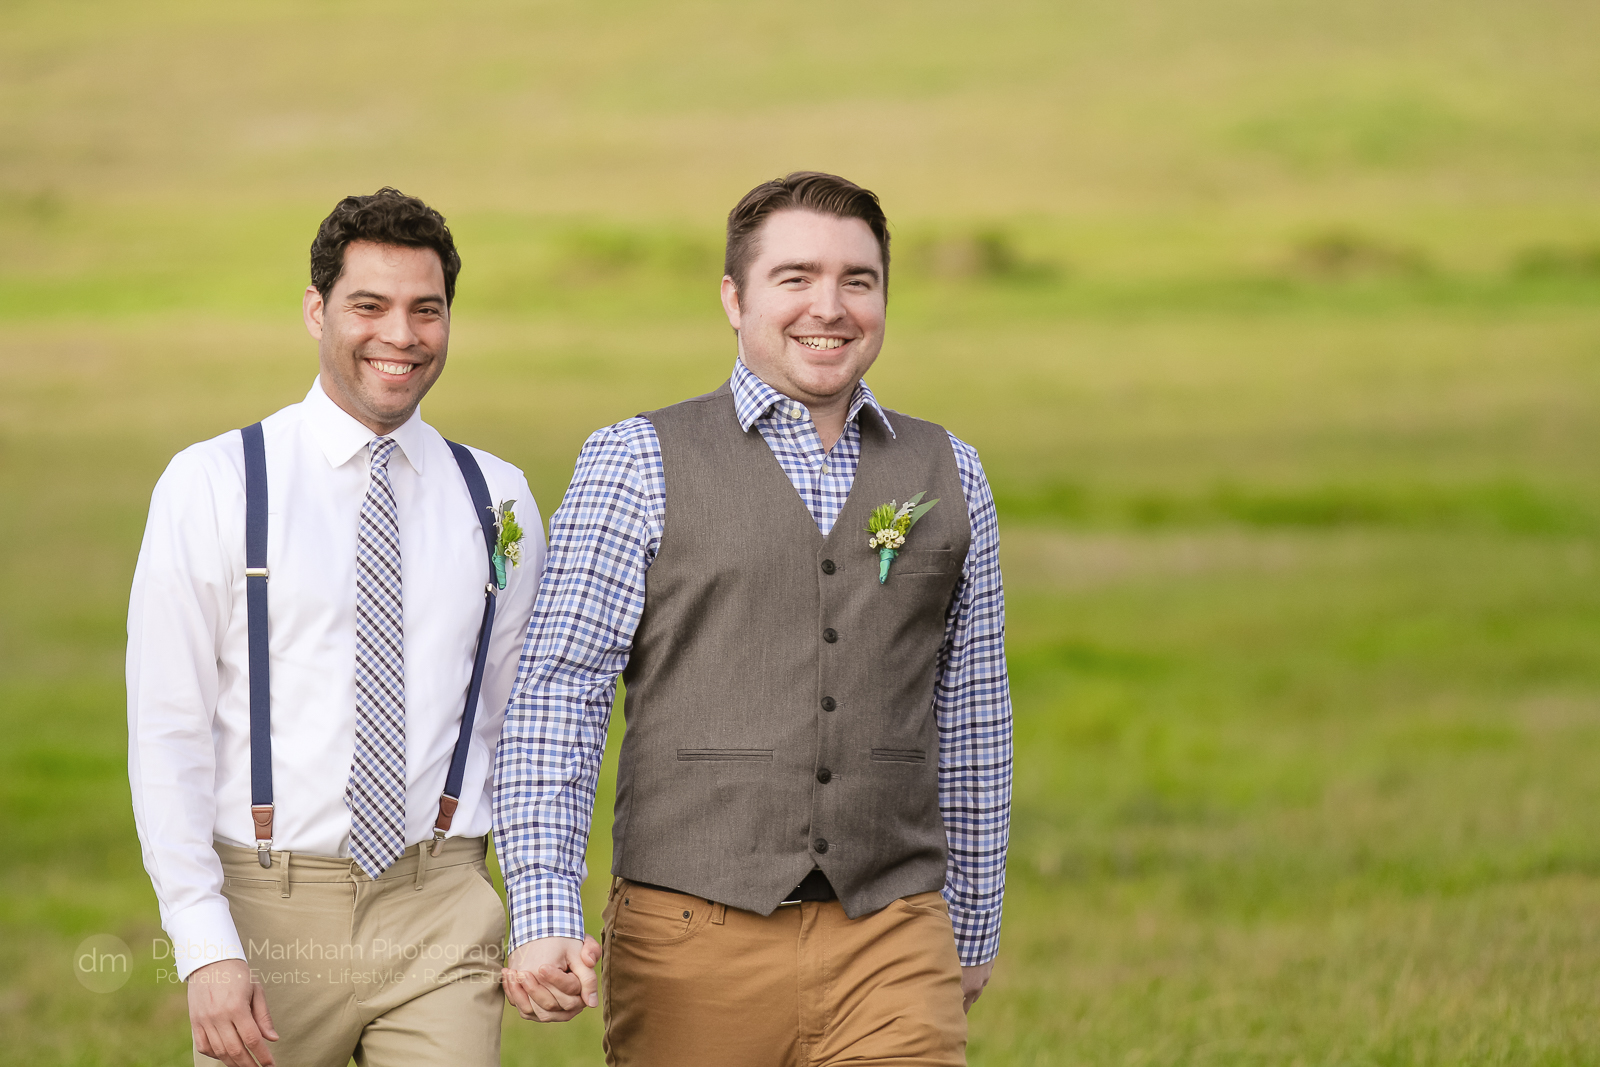 A+R_Gay Wedding_Portraits_Married_Cambria_Robin's_California_Coast__Photographer-16